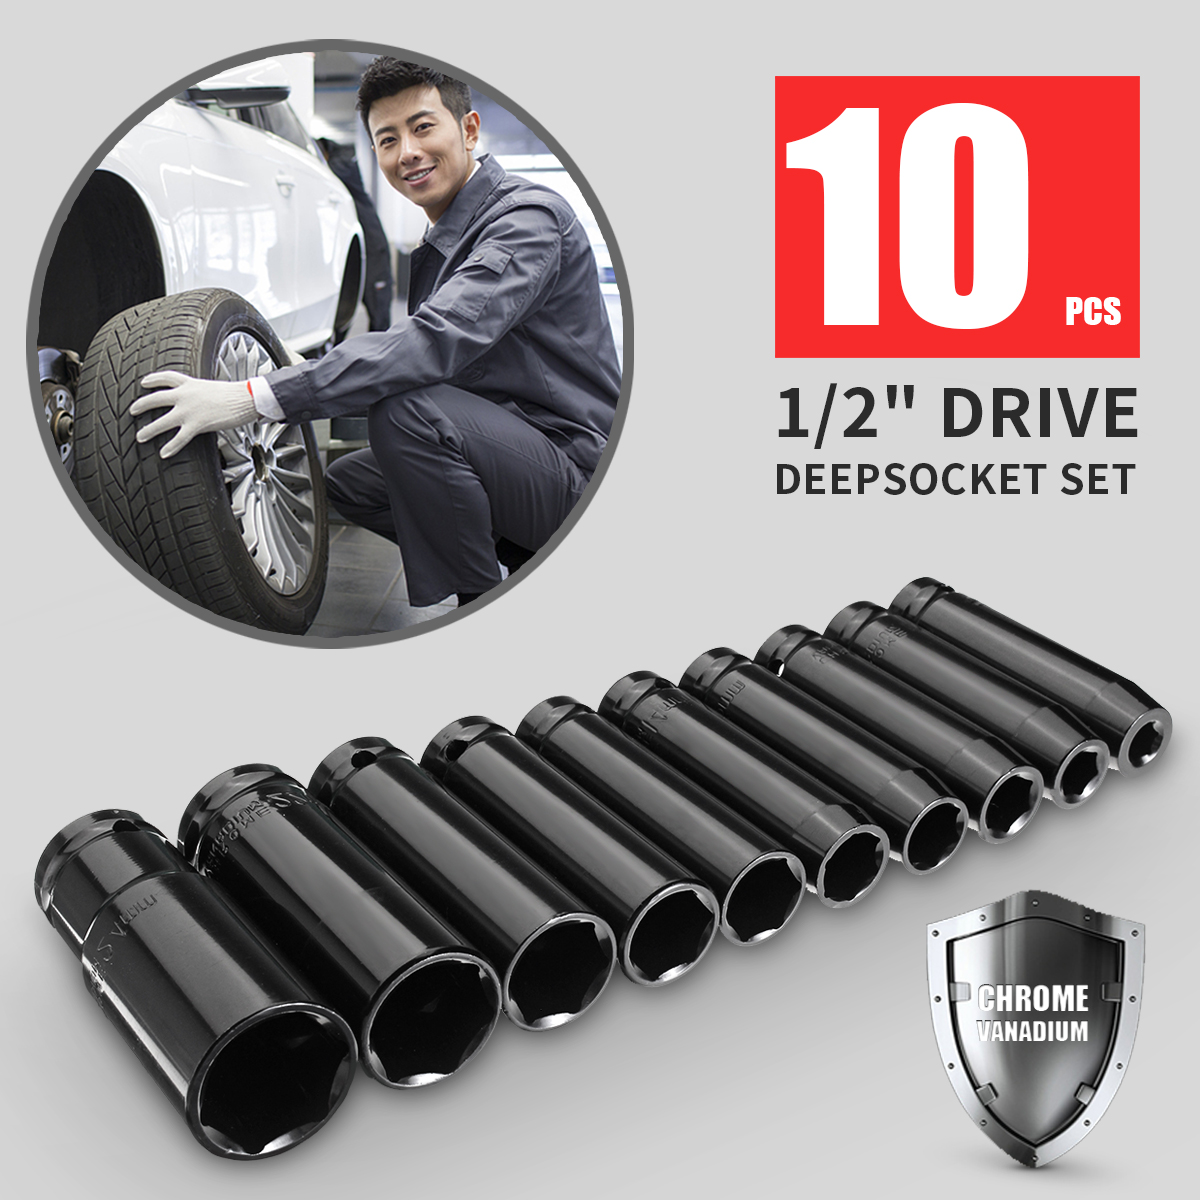 1/ 2 Inch Chrome Vanadium Black Drive Deep Impact Socket 10 In 1 Set 8-24mm Size Garage Tool Wrench Adapter Hand Tool Set